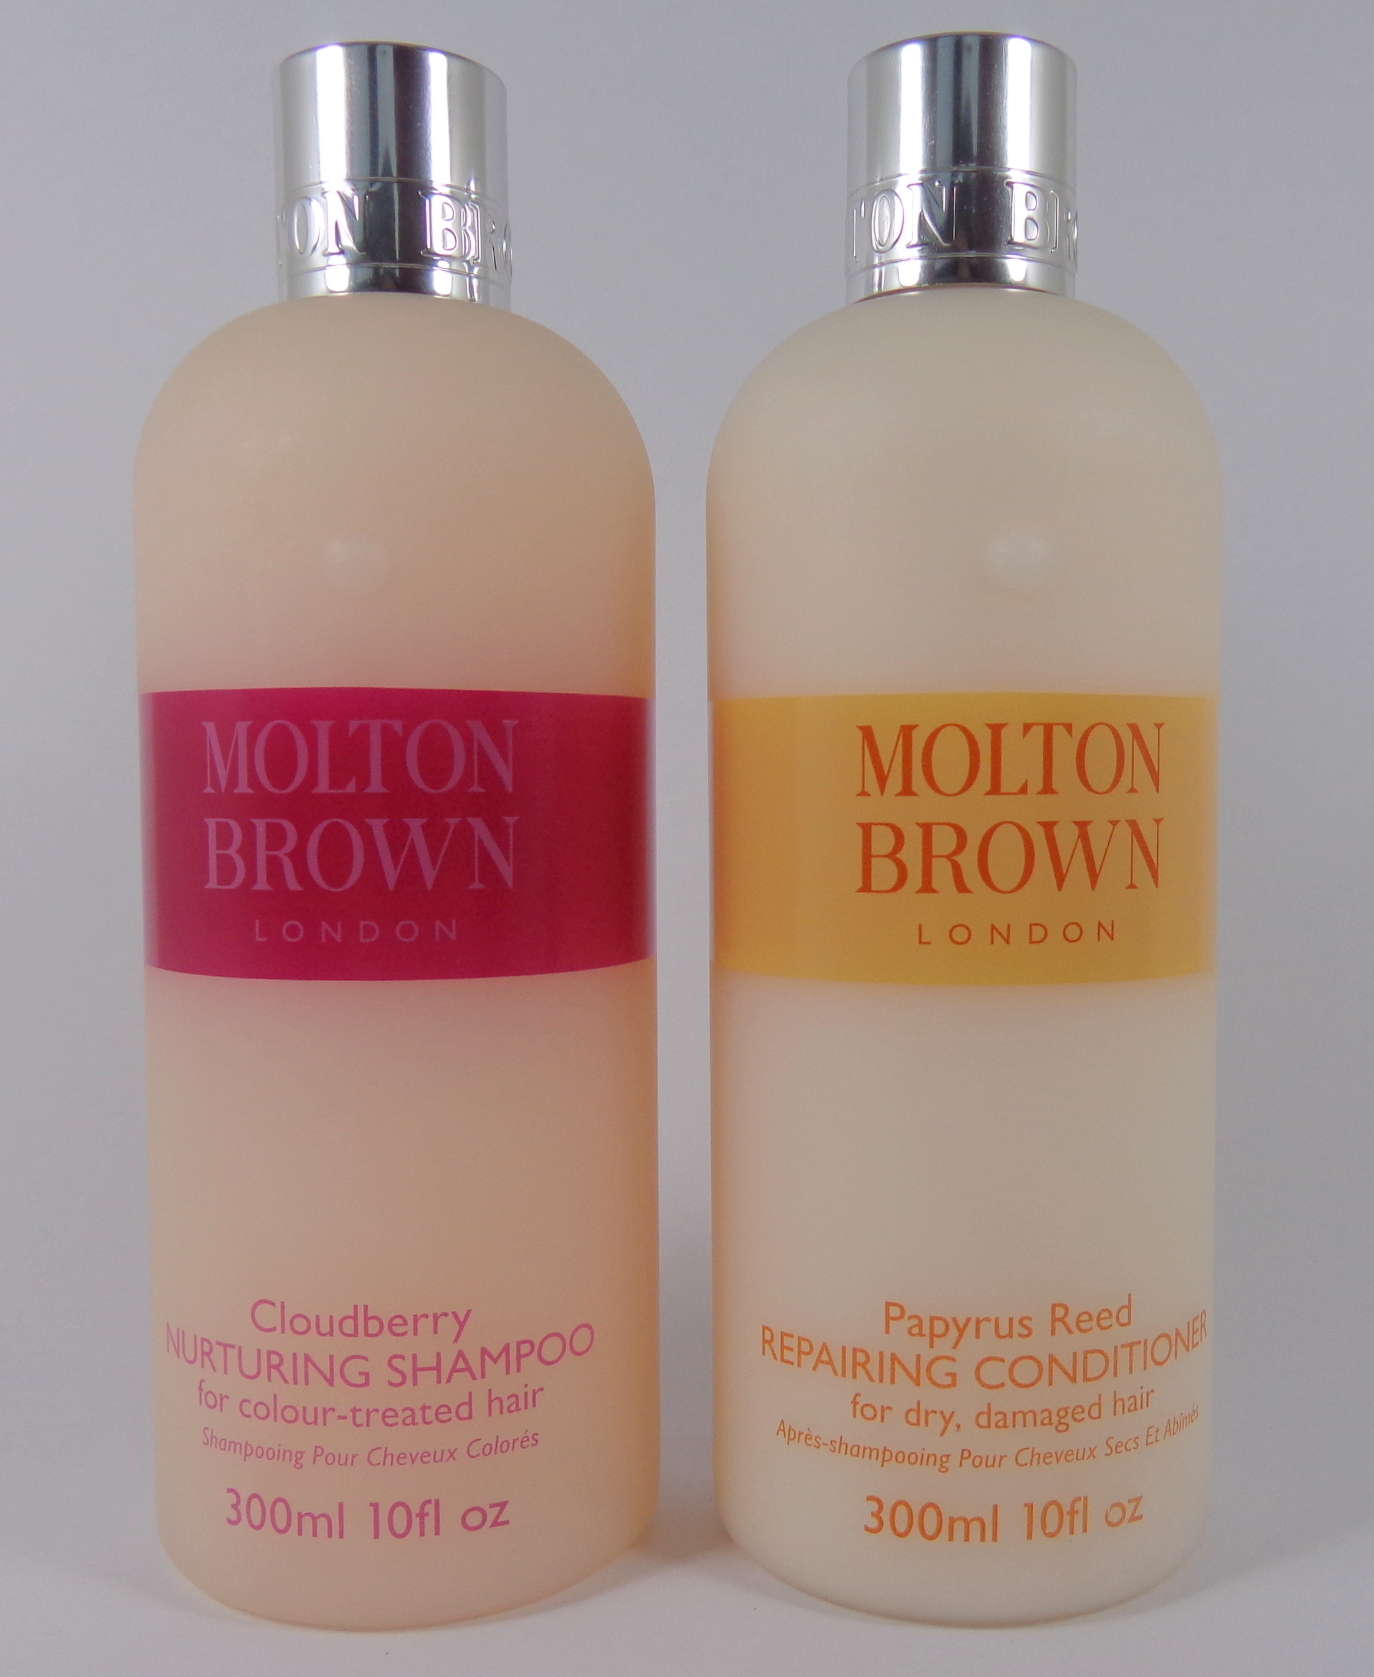 Molton Brown Shampoo Conditioner Review